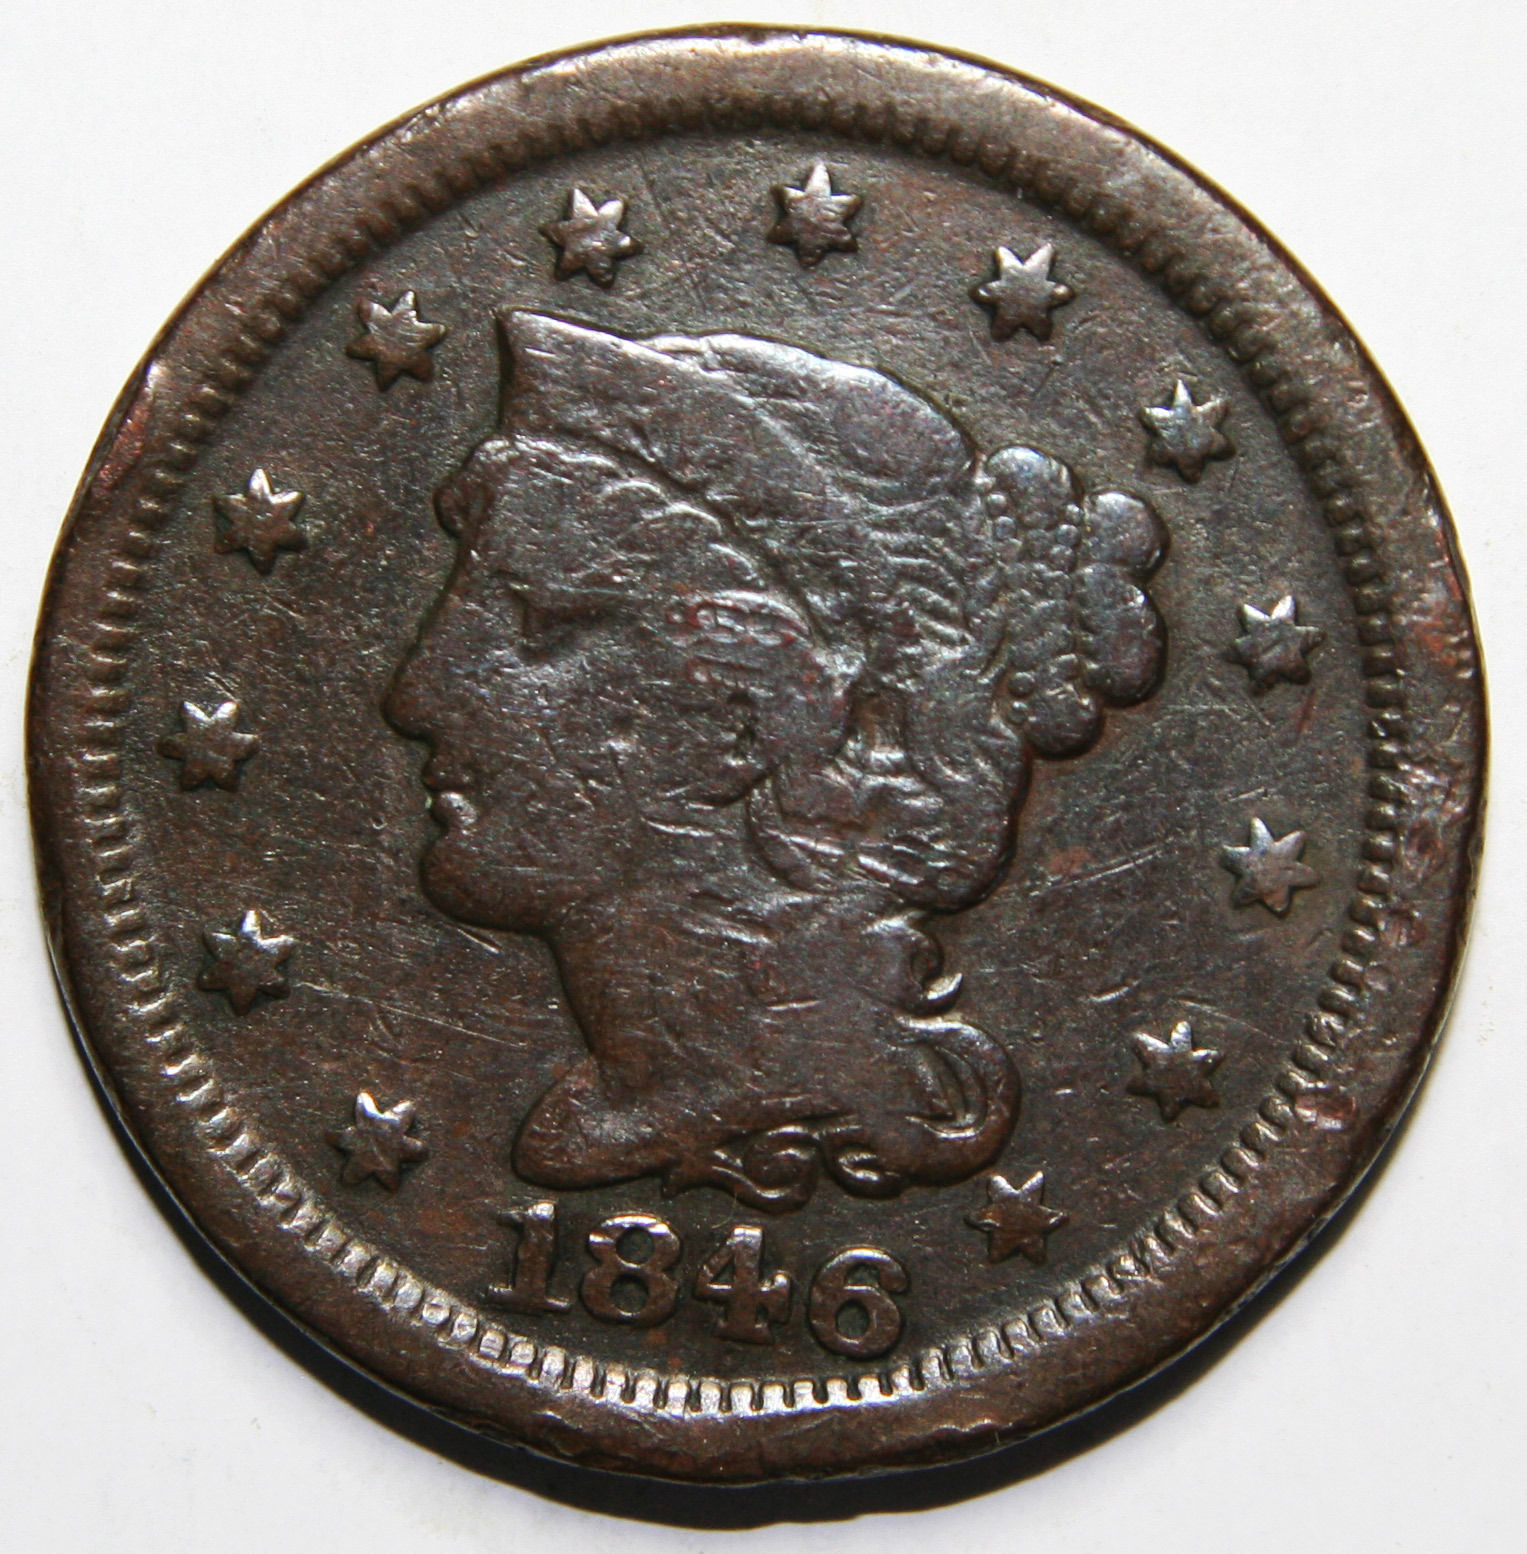 1846 Large Cent Liberty Braided Hair Head Coin Lot # A 1596